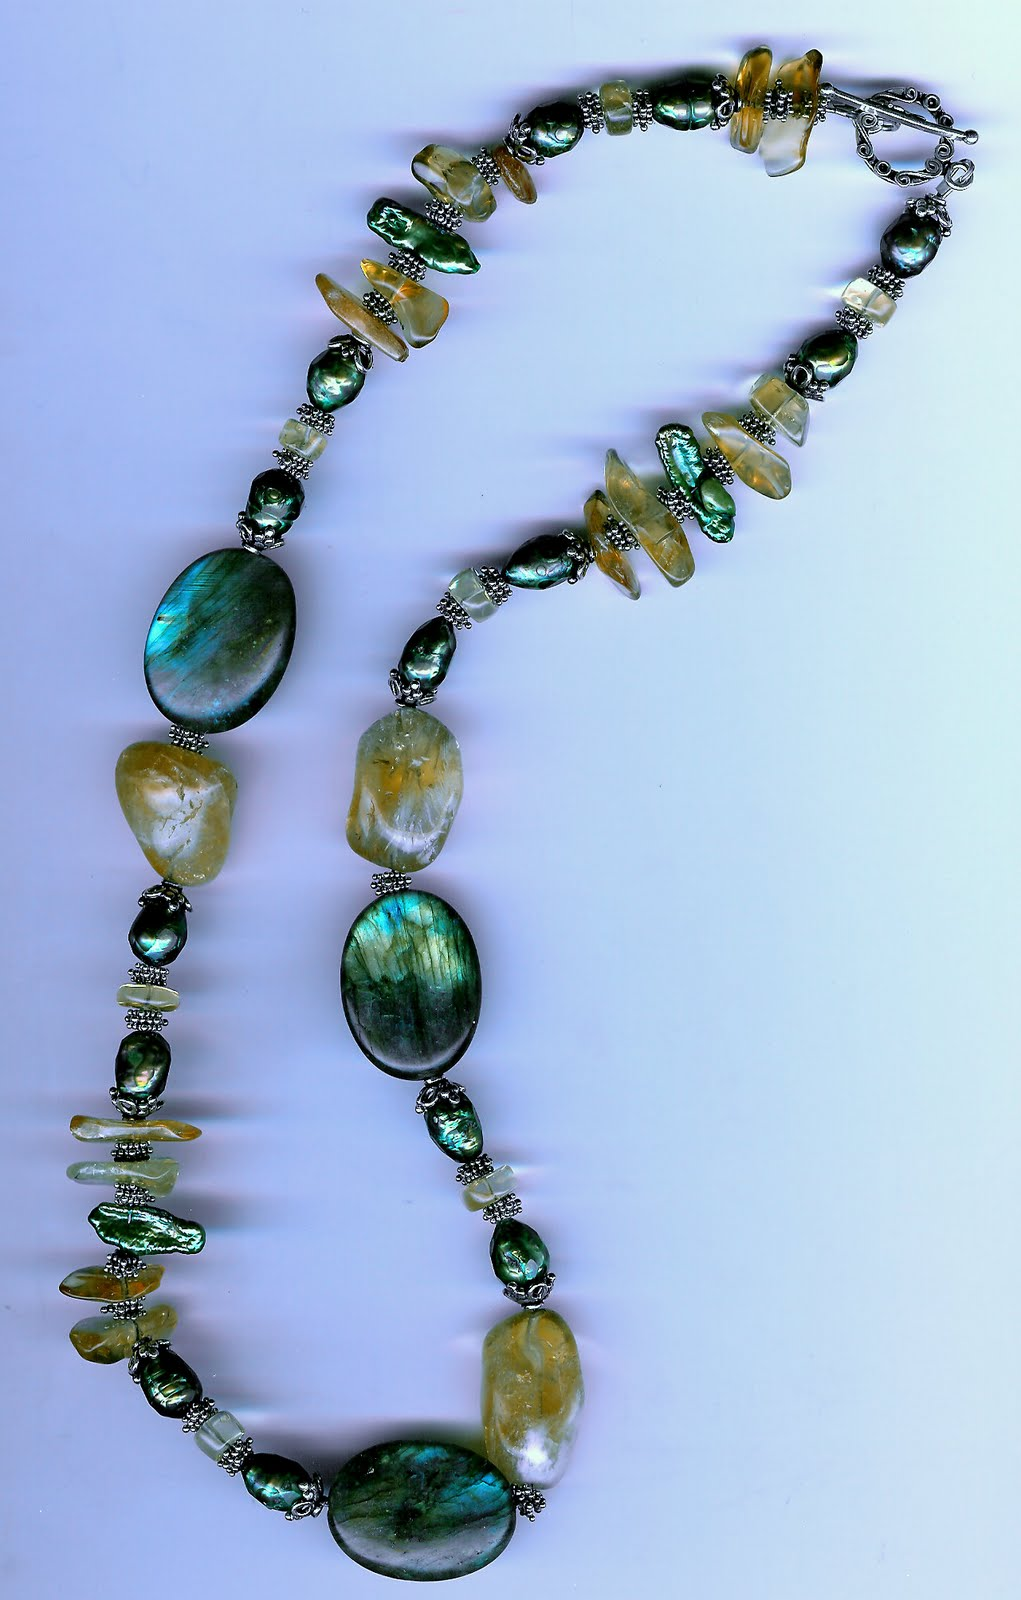 39. Labradorite, Citrine with faceted Freshwater and BIWA Pearls with Bali Sterling Silver